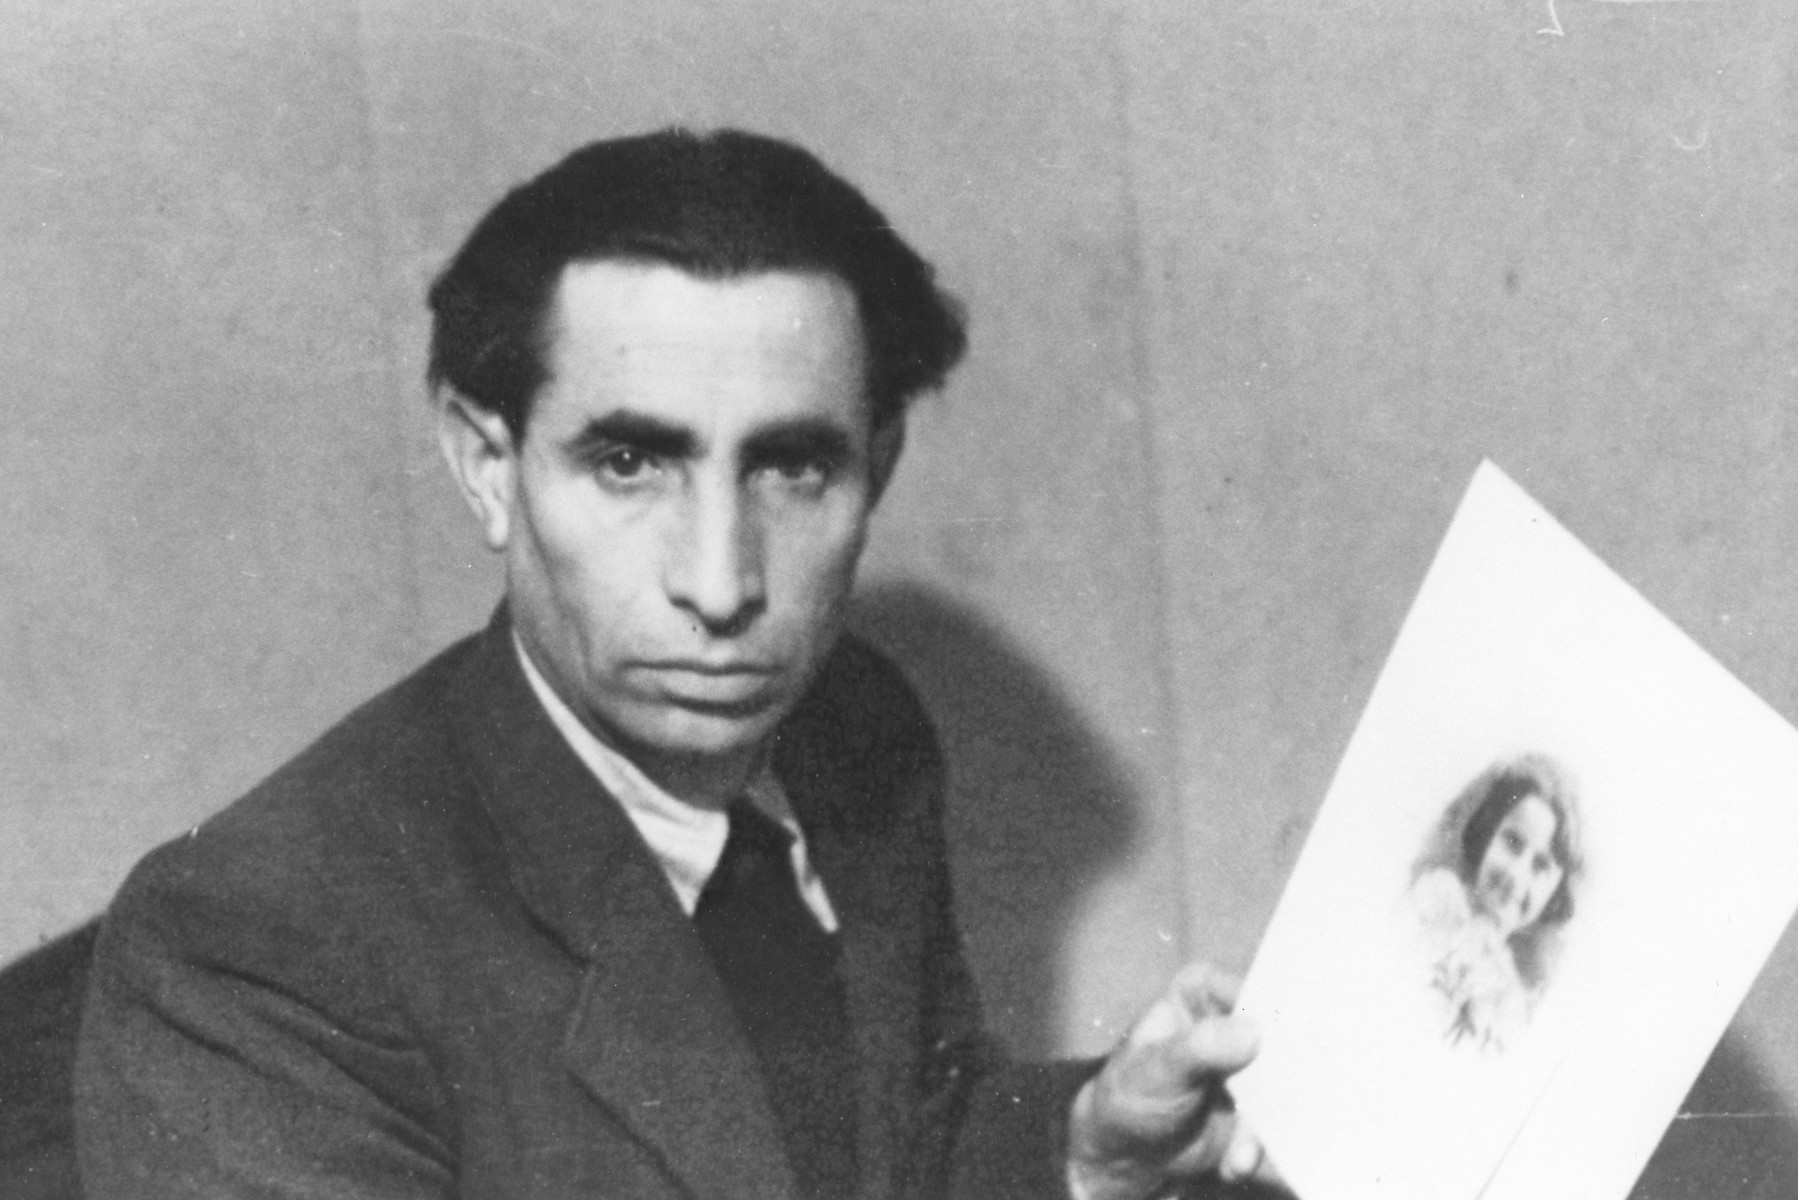 Survivor Hersh Portnoy holds up a photograph of his daughter Matle who perished during the war.